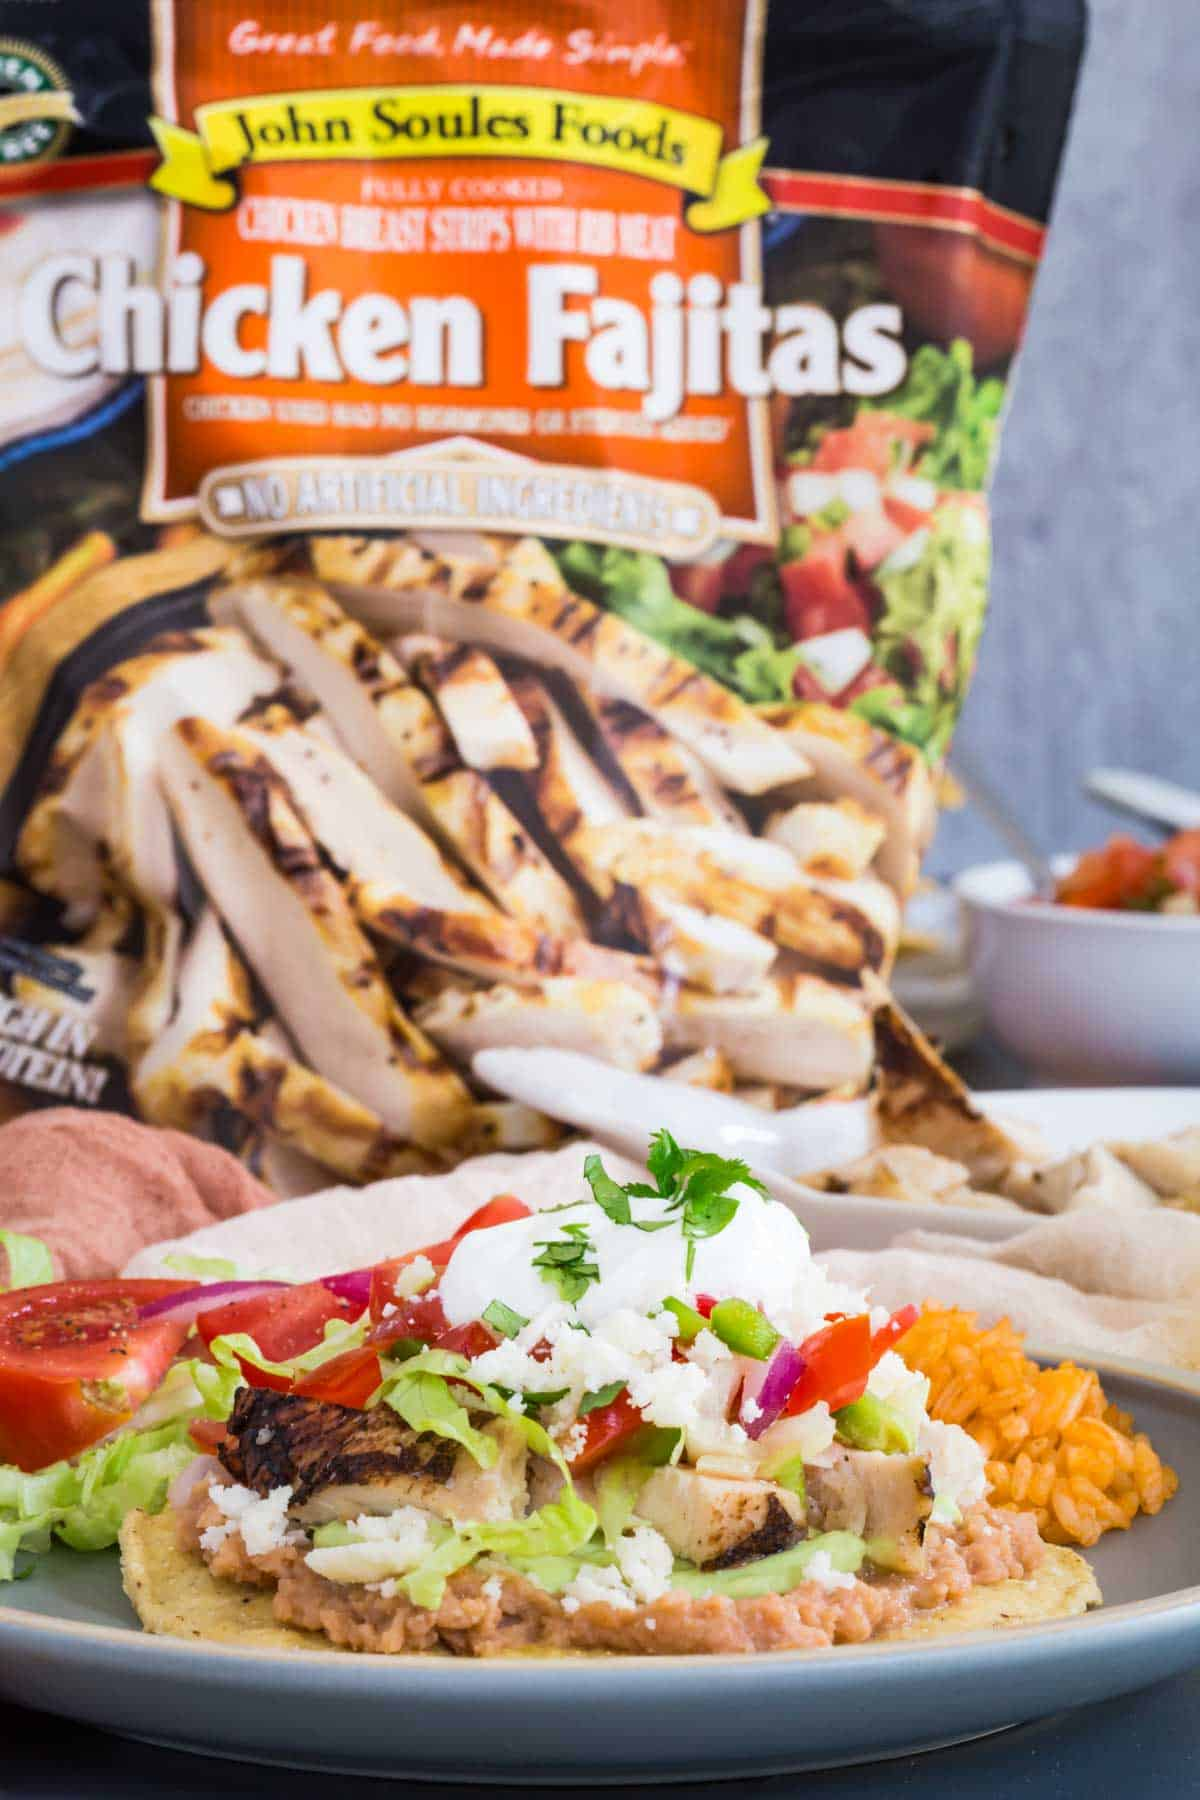 a chicken tostada on a plate with a bag of John Soules Foods fully cooked chicken fajita strips behind it